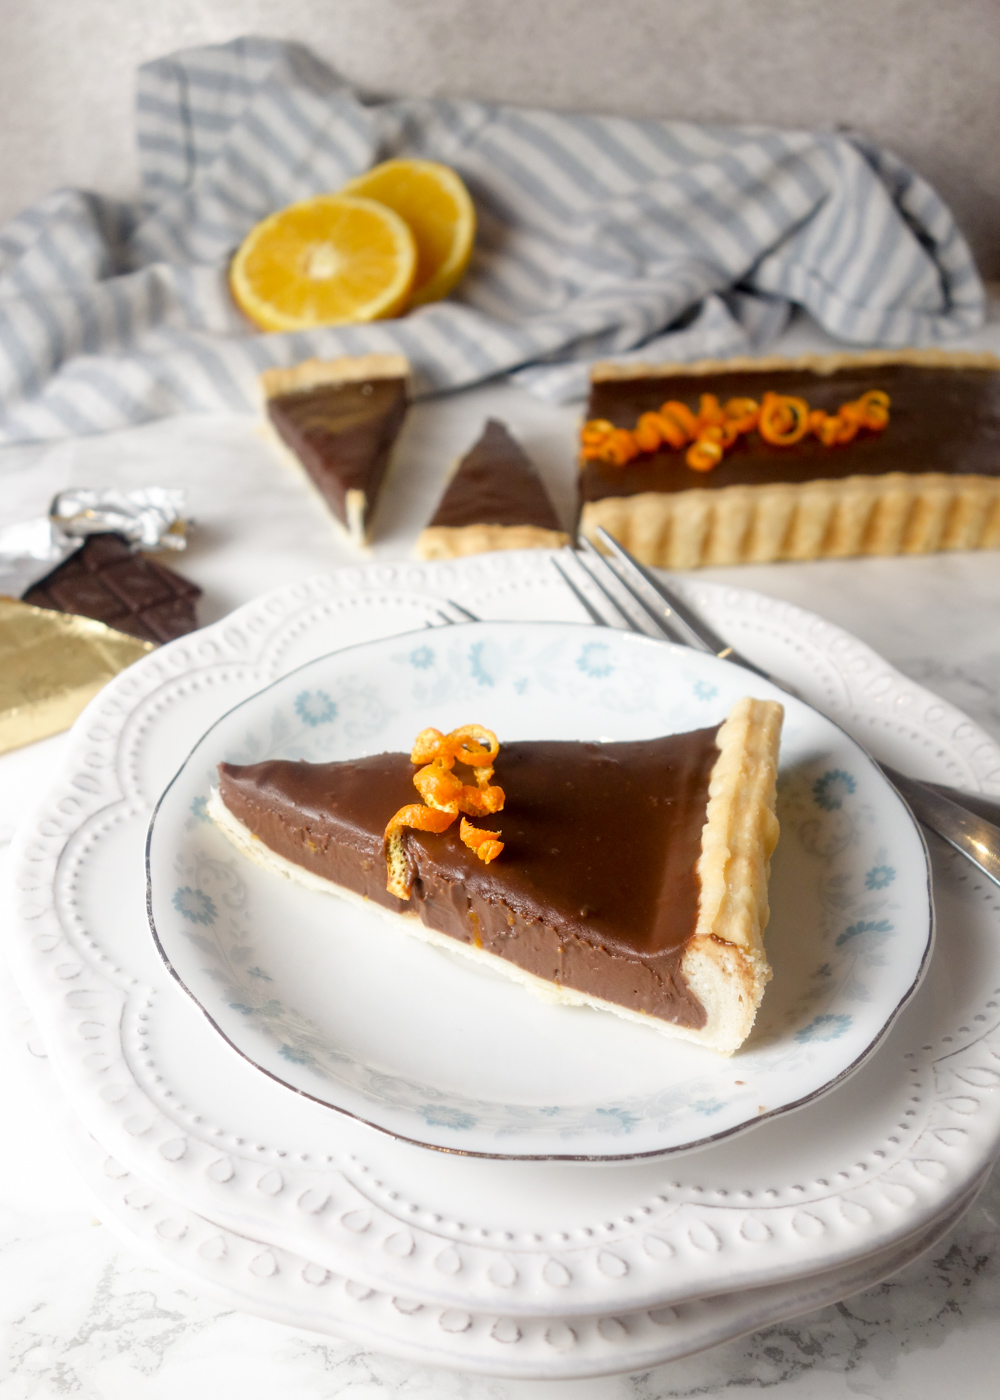 Chocolate Orange Tart: Shortcrust pastry with a light and creamy chocolate orange filling. The perfect make-ahead dessert!